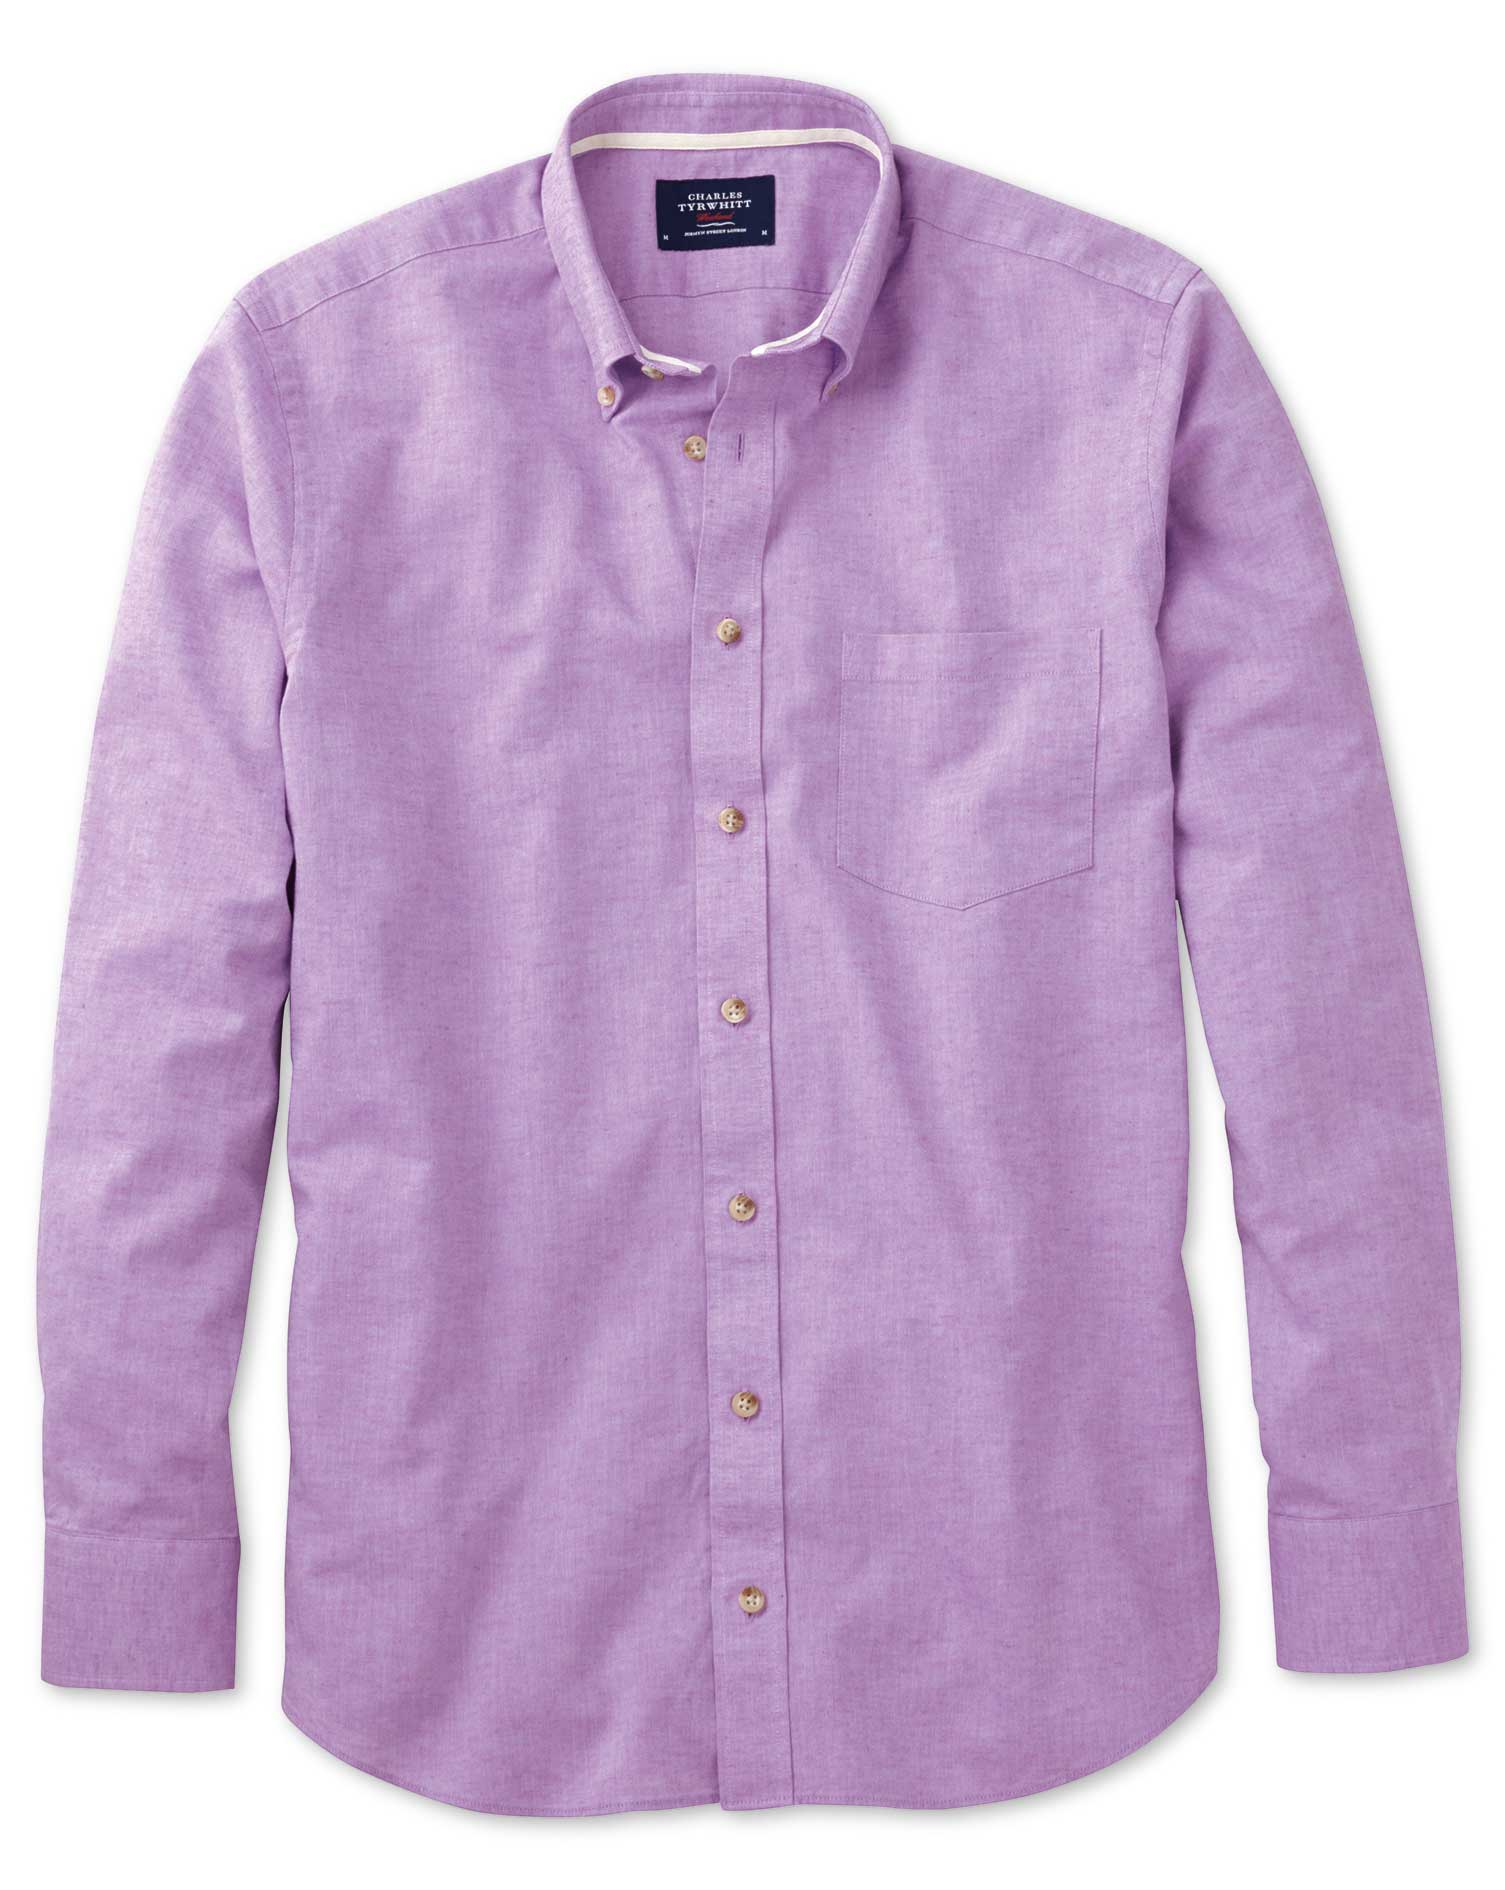 Slim Fit Lilac Cotton Shirt Single Cuff Size Small by Charles Tyrwhitt